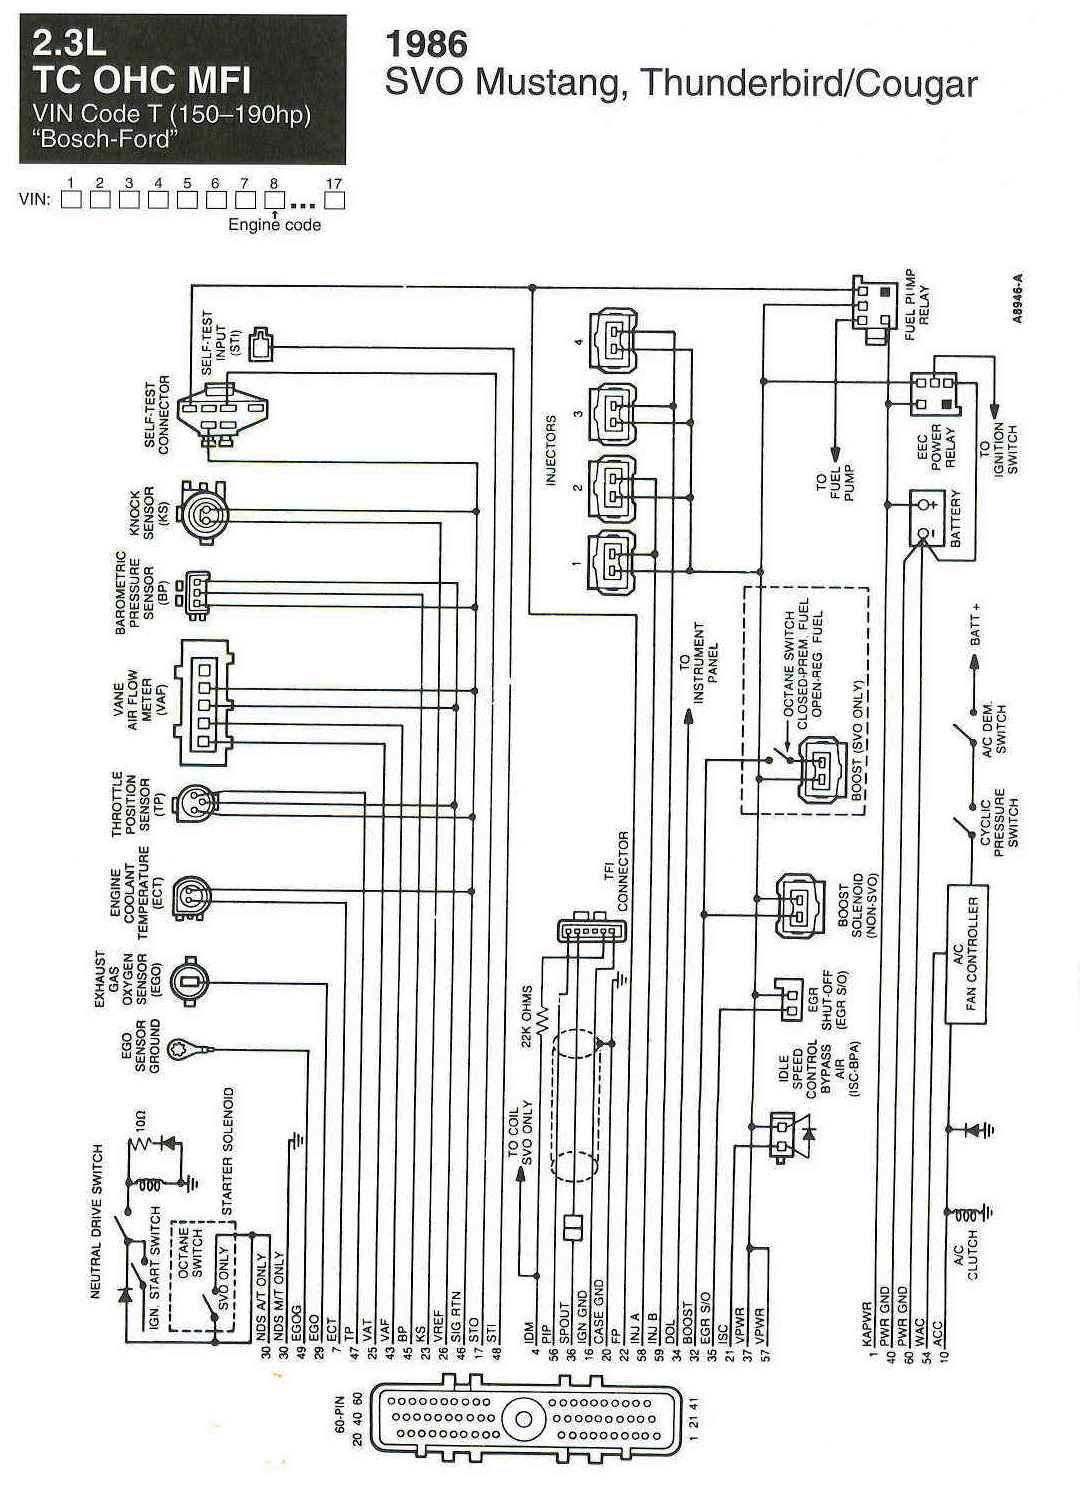 1994 ford thunderbird radio wiring diagram 2 cycle engine carburetor premium sound library